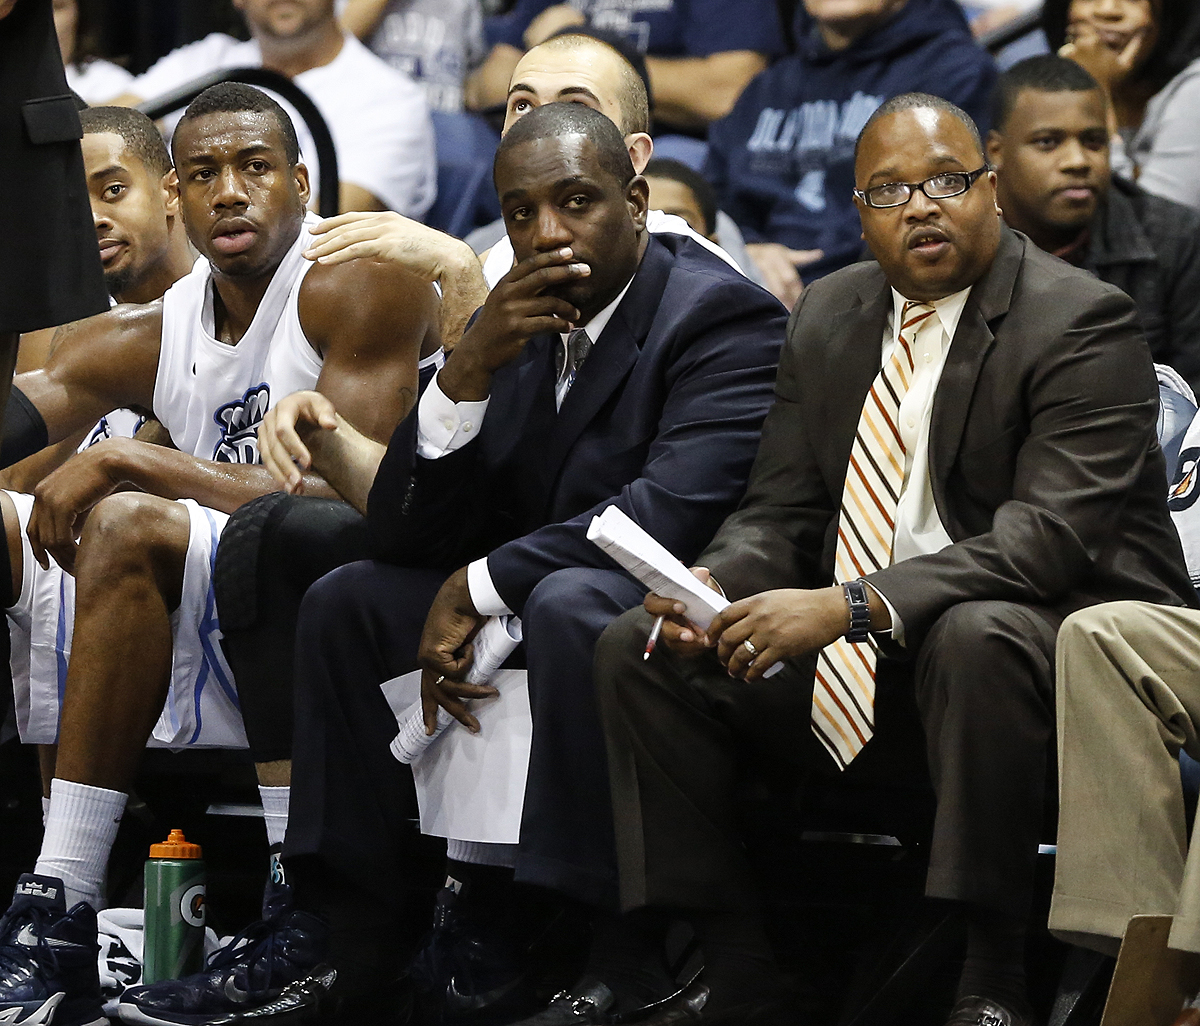 Sports Wrap by Coastal Virginia Magazine Sports Editor Keith Cephus | ODU Wins Season Opener Against UNC Wilmington 76-56